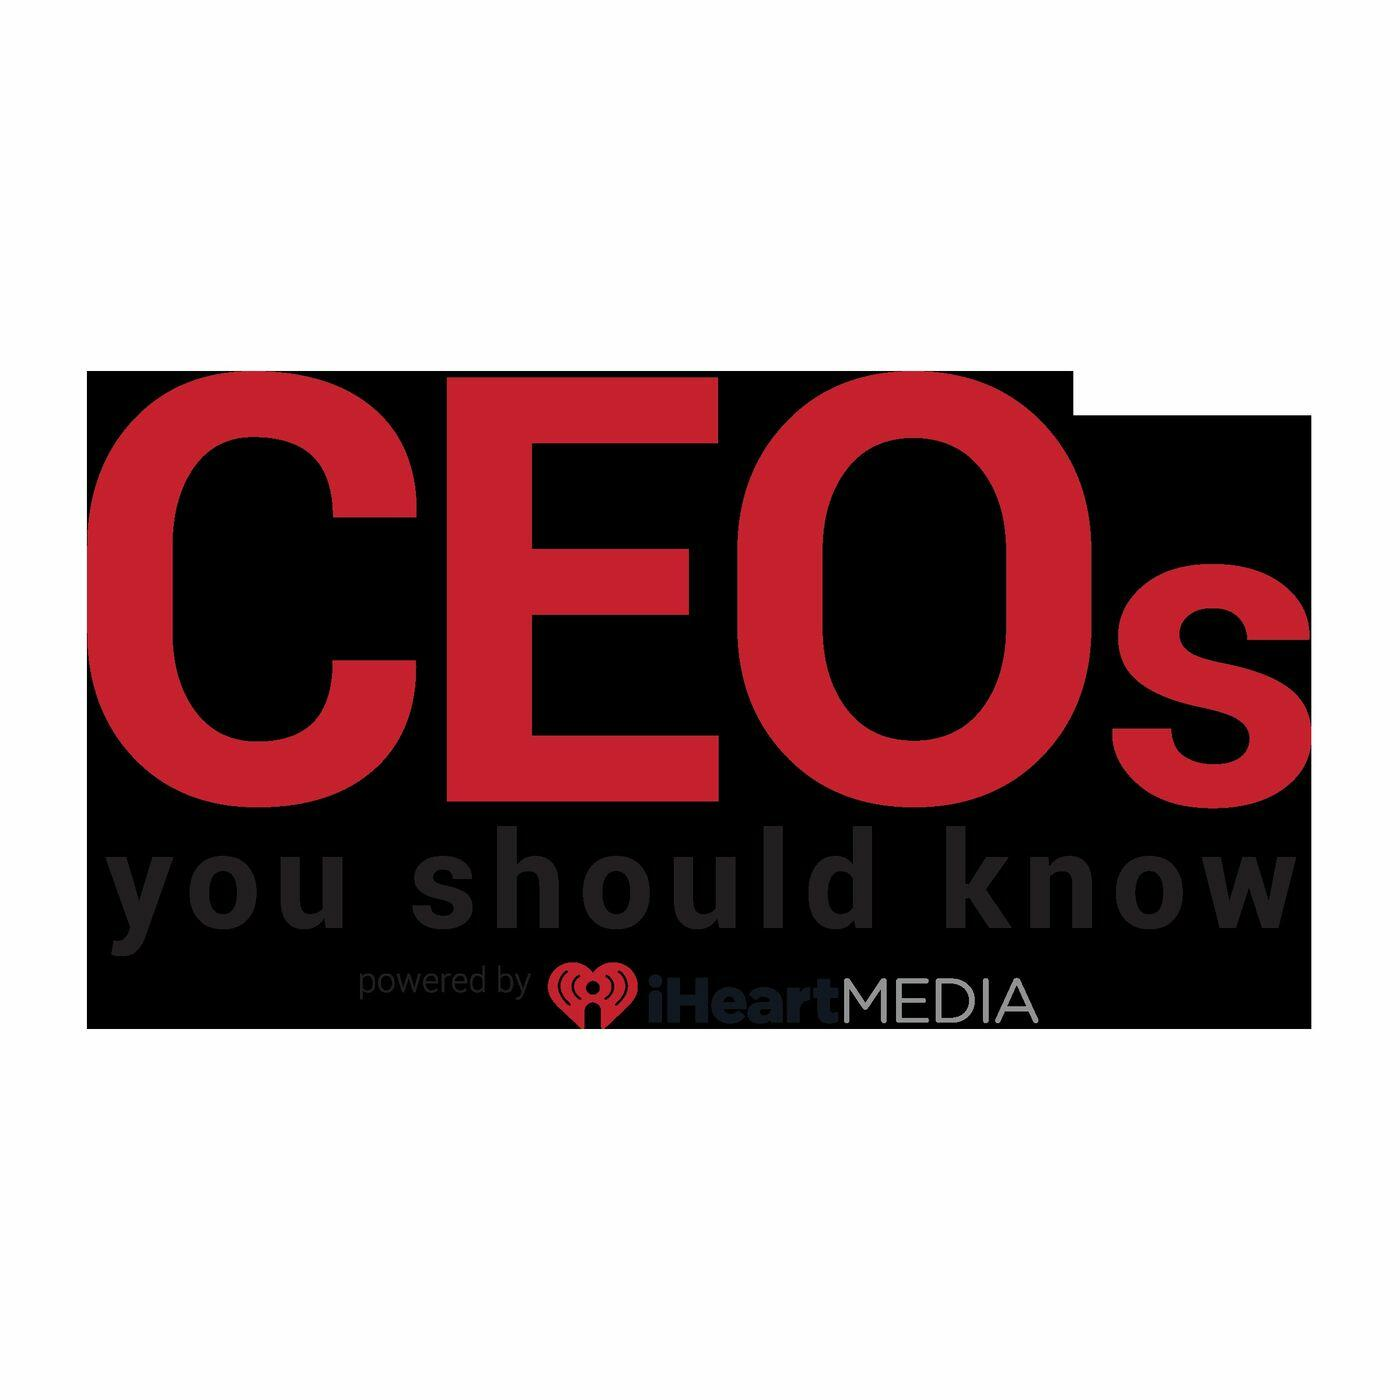 WGY's CEOs You Should Know